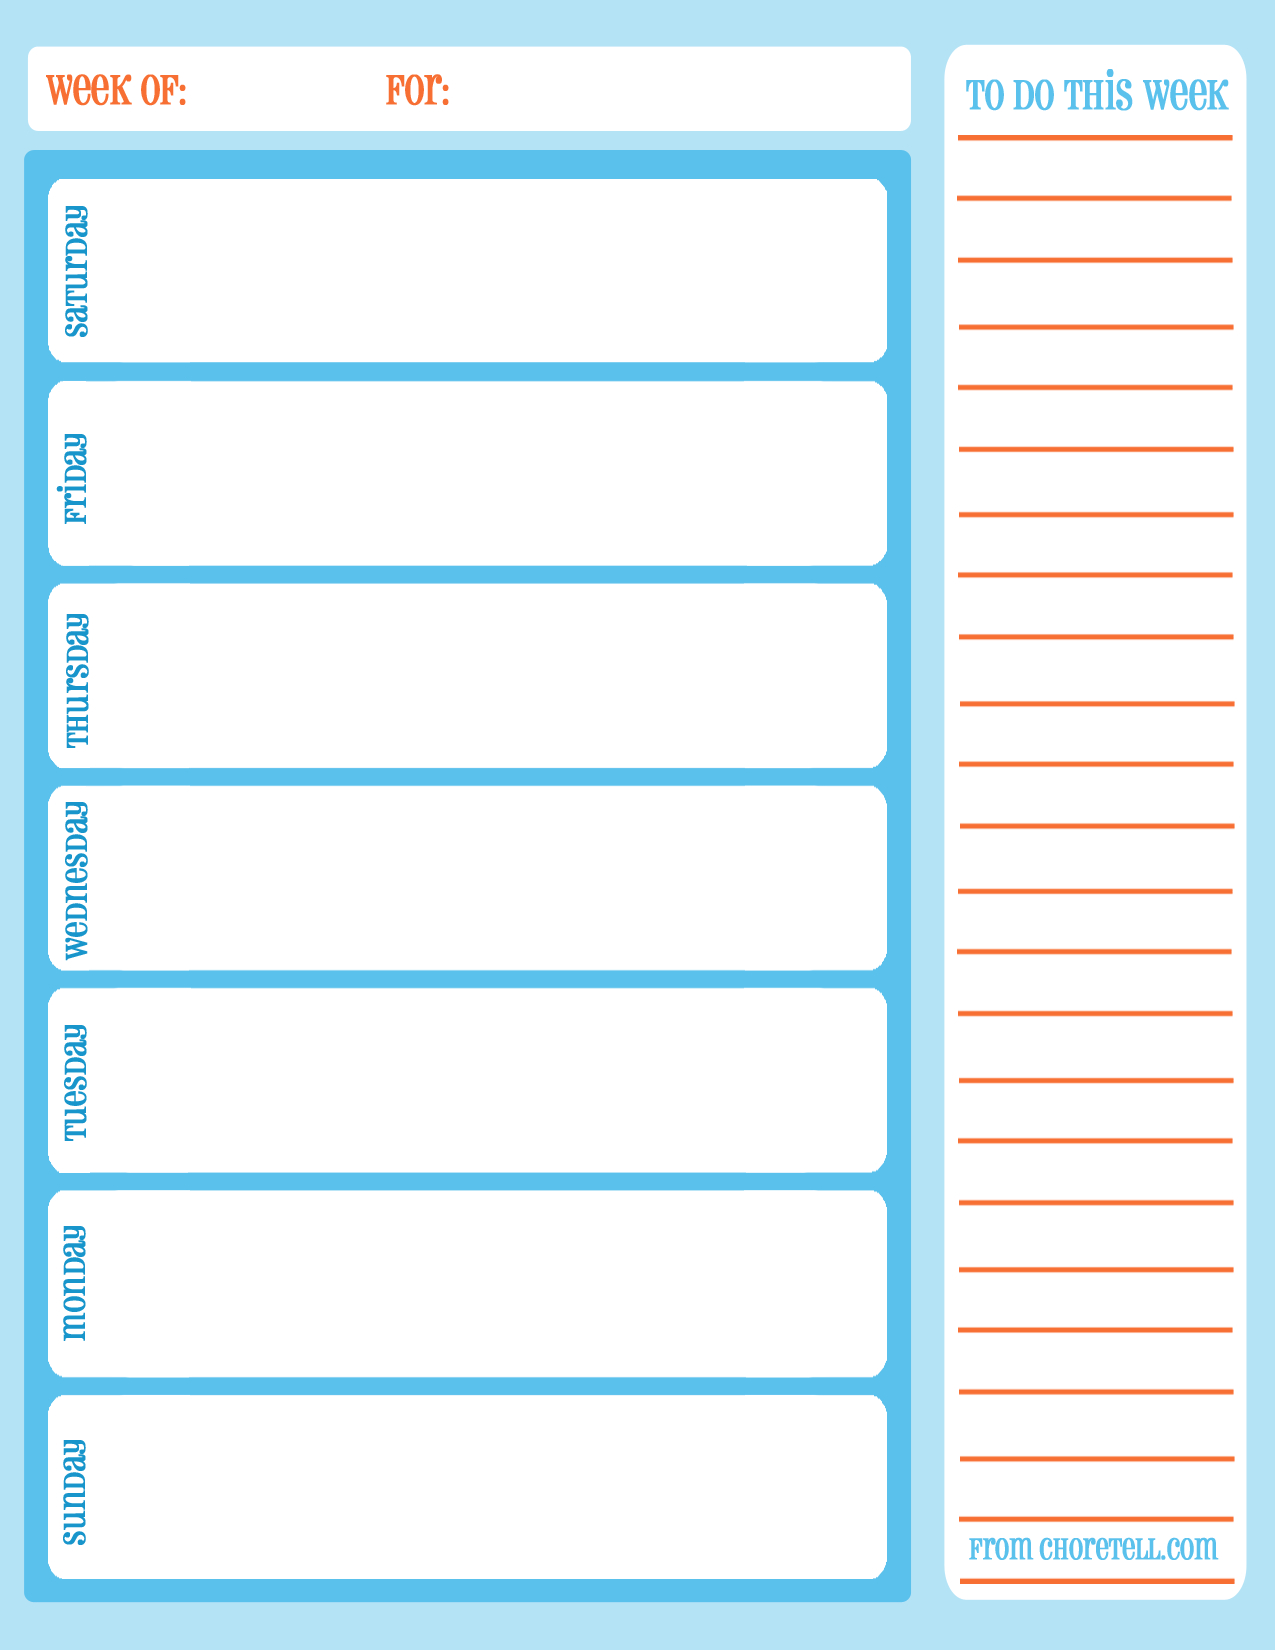 Free Printable Weekly Chore Calendar - Free Printable Downloads From - Free Printable Daily Schedule Chart